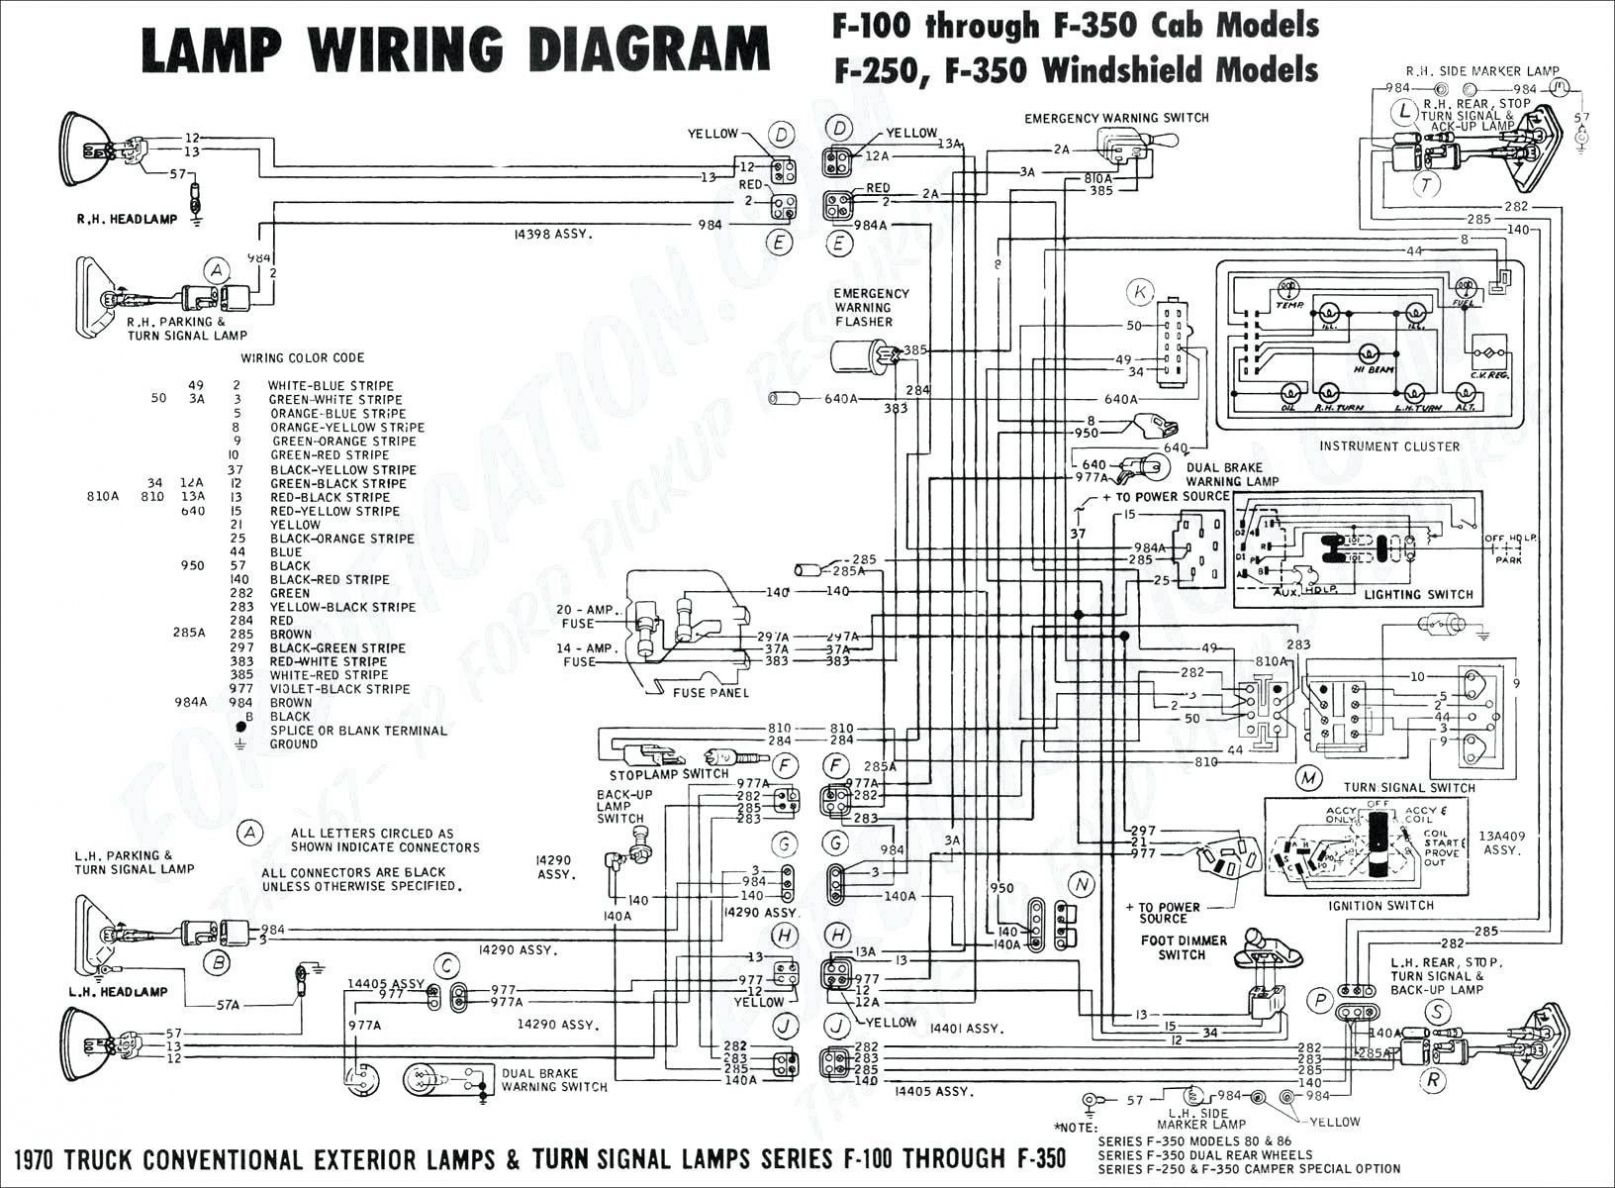 Wiring Diagram For Kawasaki Bayou Wiring Diagramkawasaki Wiring Diagram Index Listing Of Wi Electrical Wiring Diagram Electrical Diagram Trailer Wiring Diagram